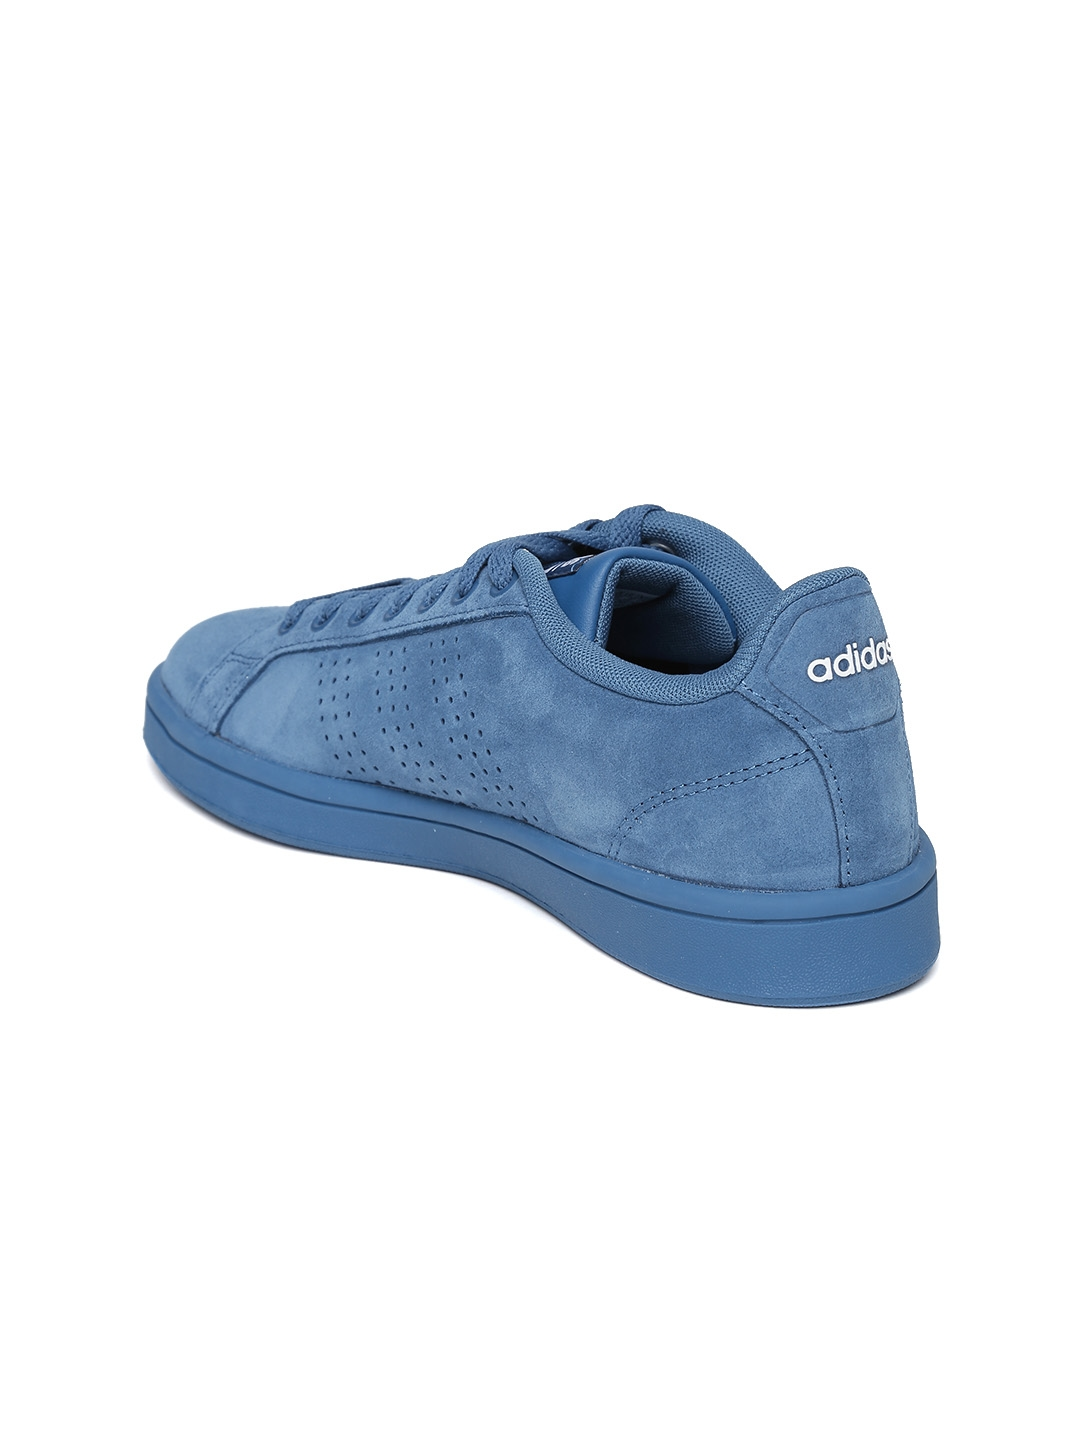 best service f092d 2de2c buy adidas neo women blue cloadfoam advantage clean suede sneakers 056b6  c9adc